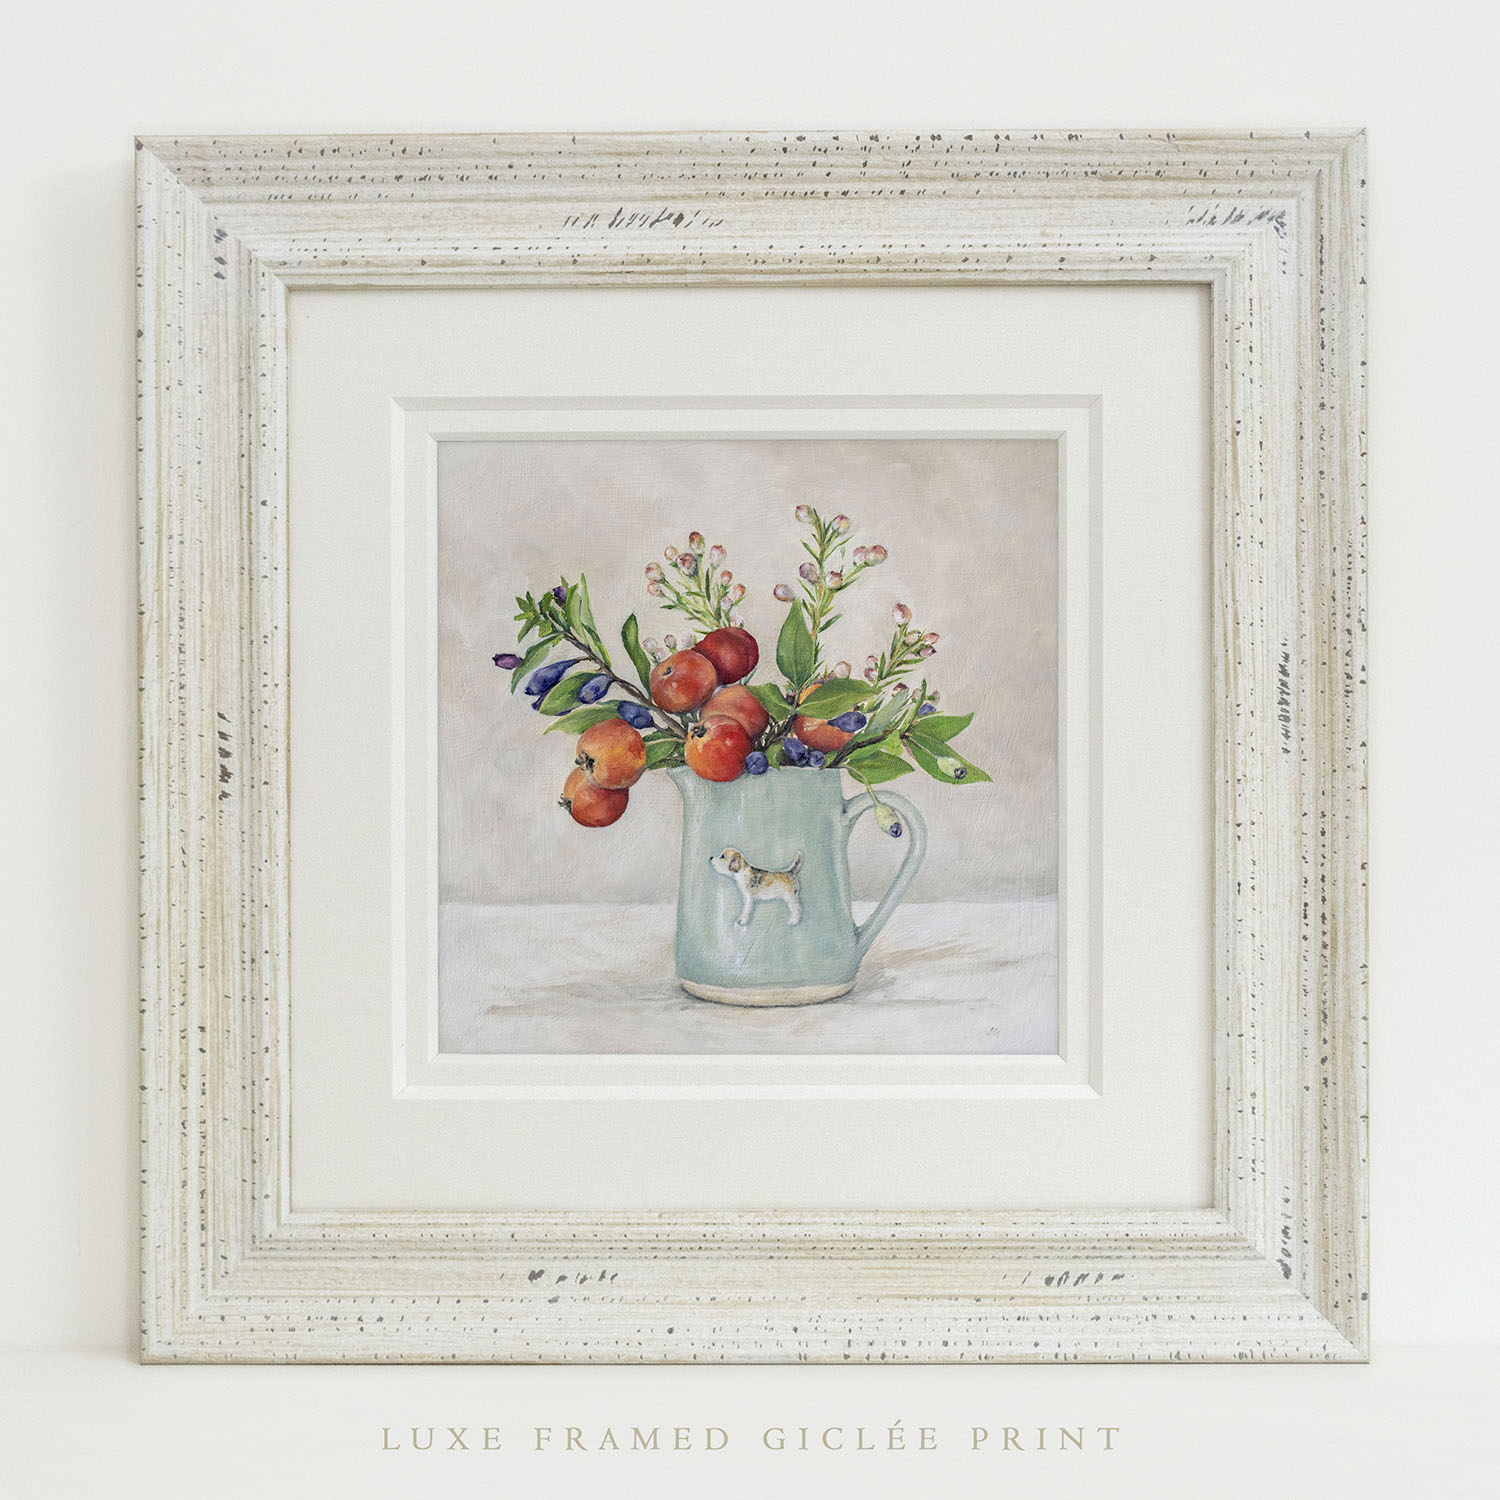 Luxe Framed Giclée Print of Hogben Pottery's Beagle jug in Eau-de-Nil